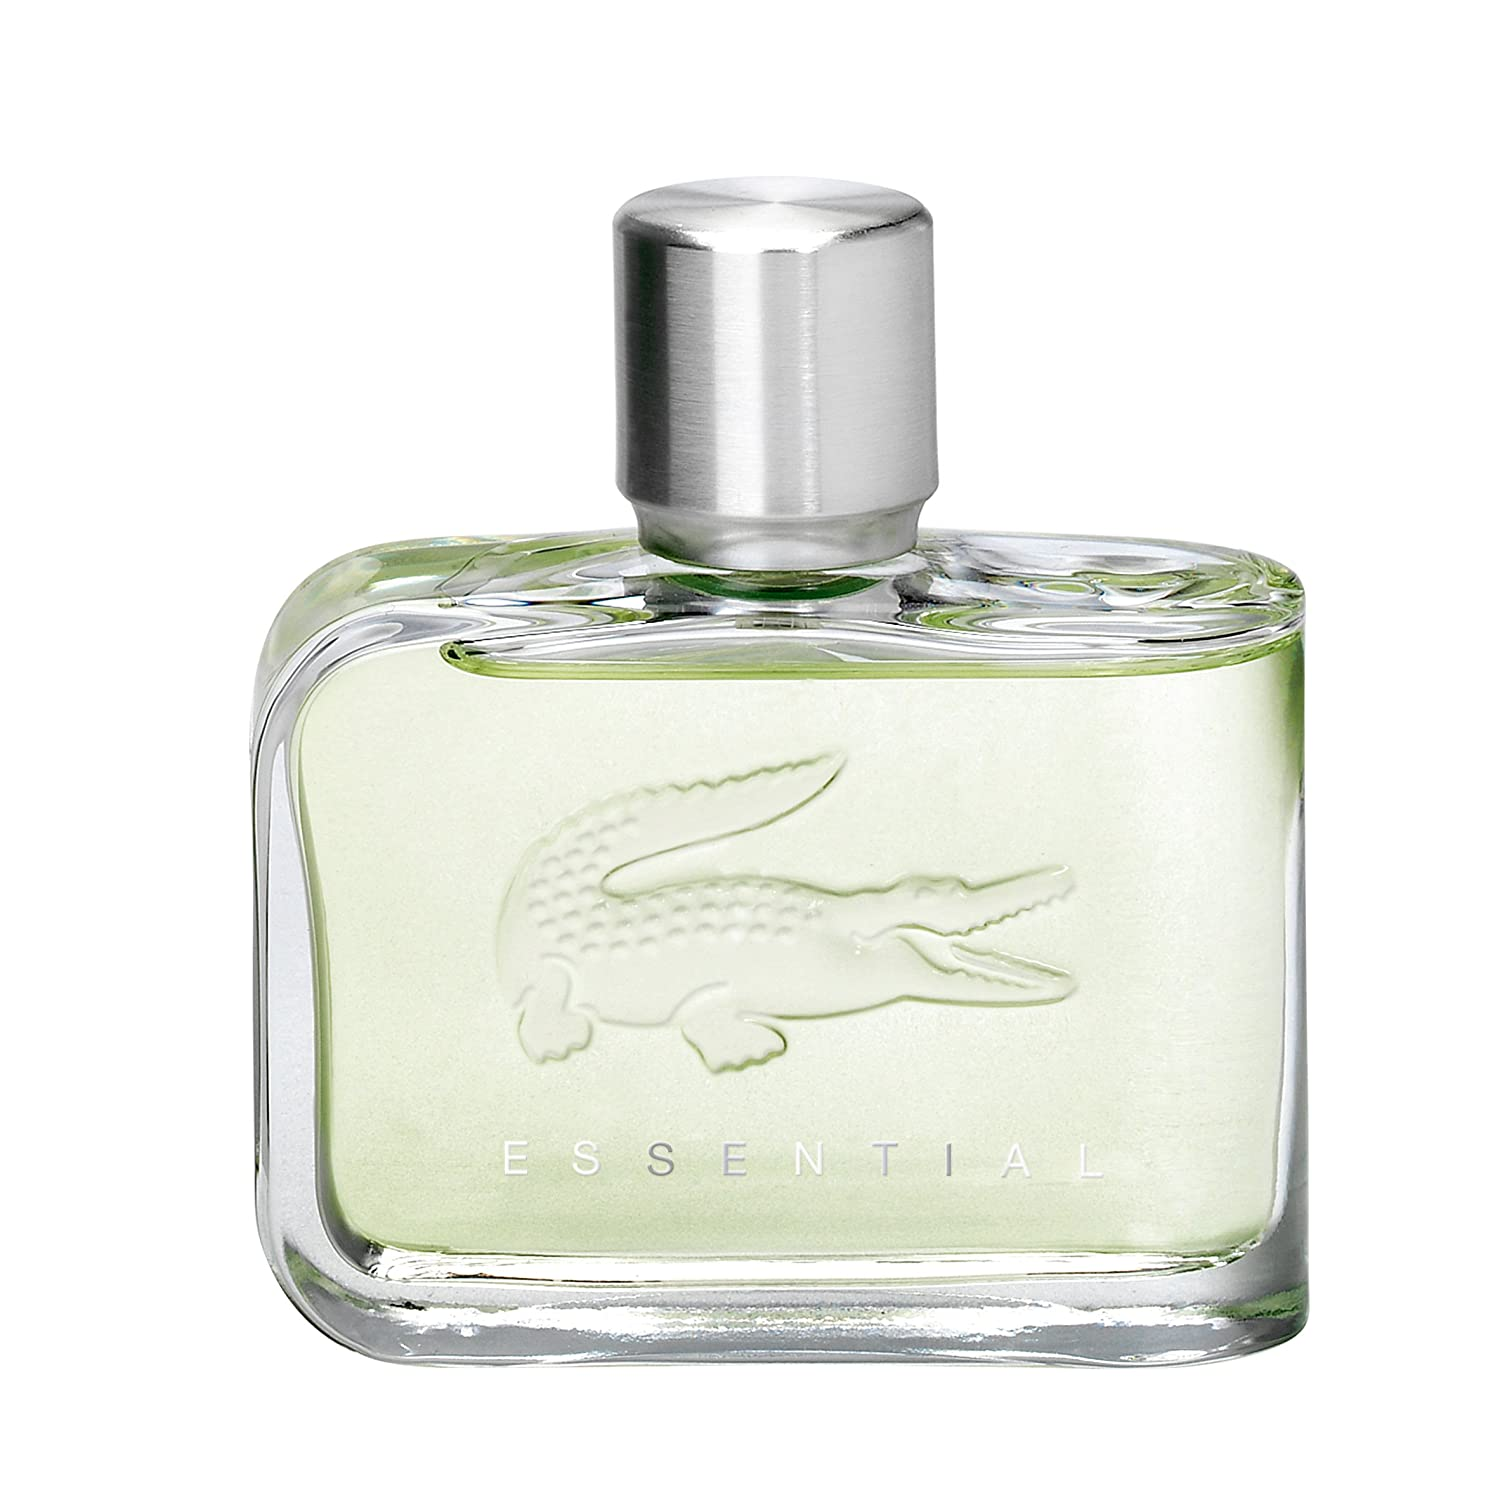 Lacoste - Lacoste Essential Eau De Toilette Spray 125ml/4.2oz 483214